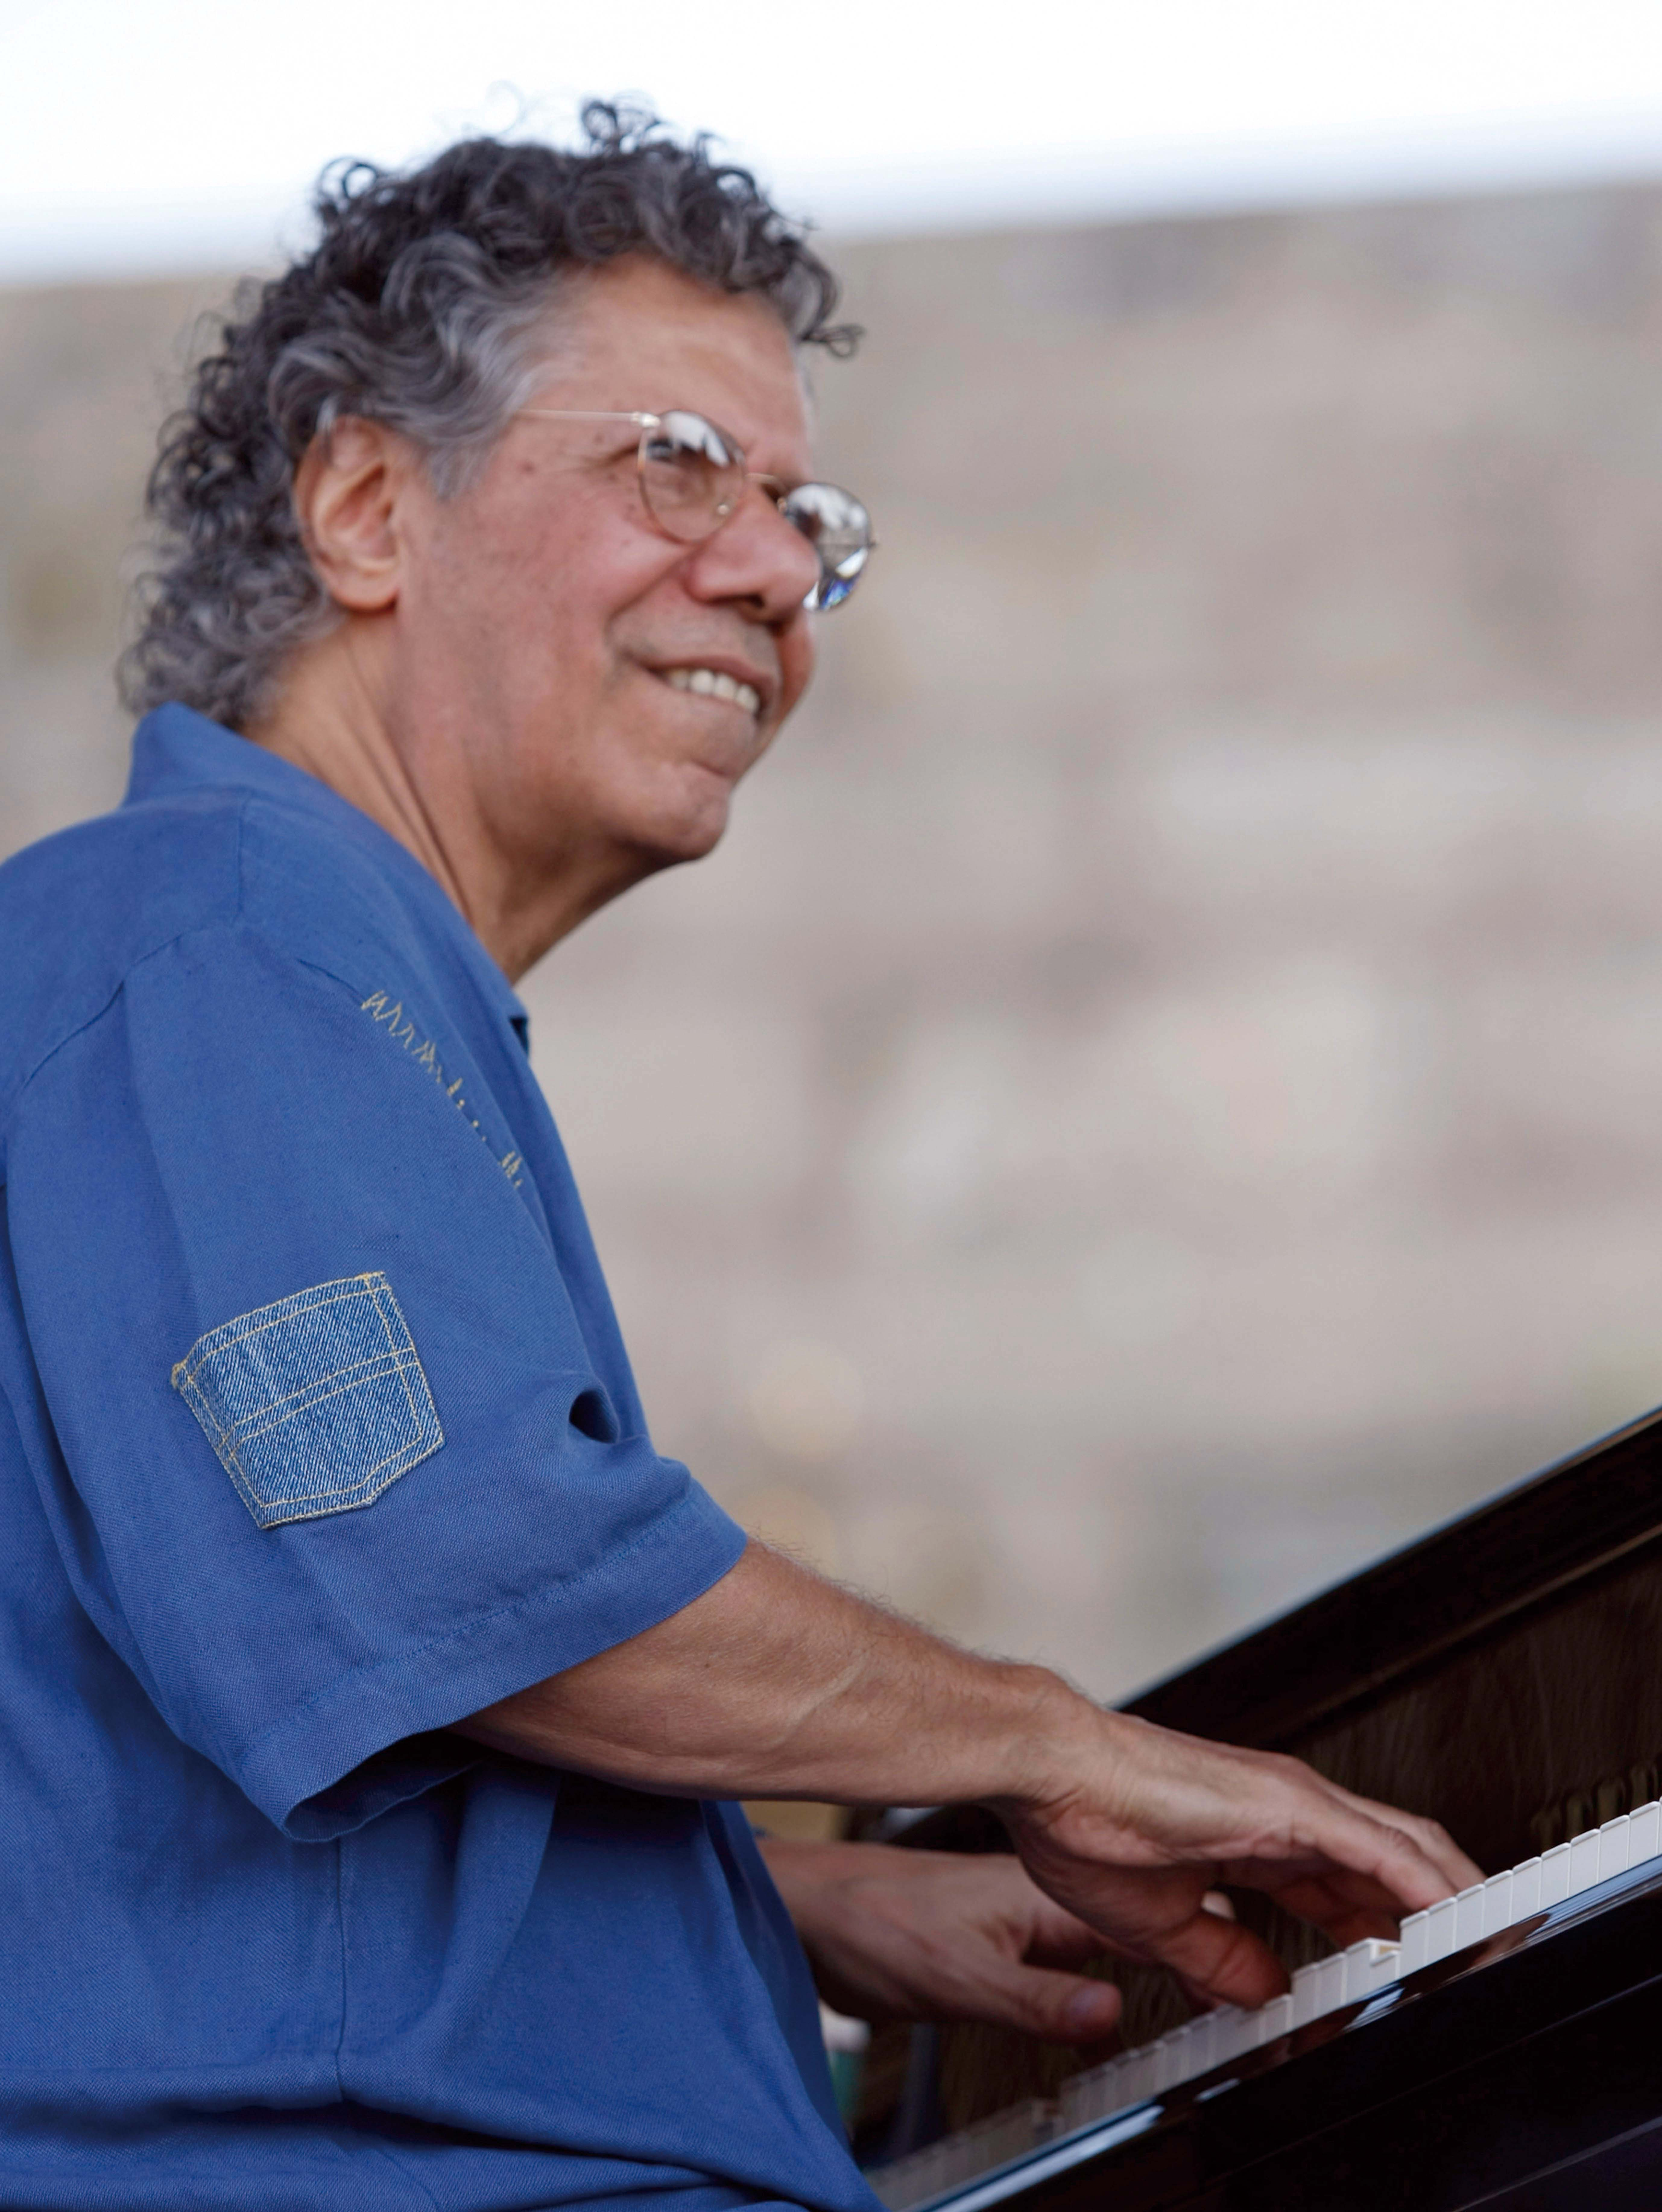 In a Saturday, Aug. 7, 2010 file photo, Chick Corea performs at the CareFusion Newport Jazz Festival in Newport, R.I. Associated Press)